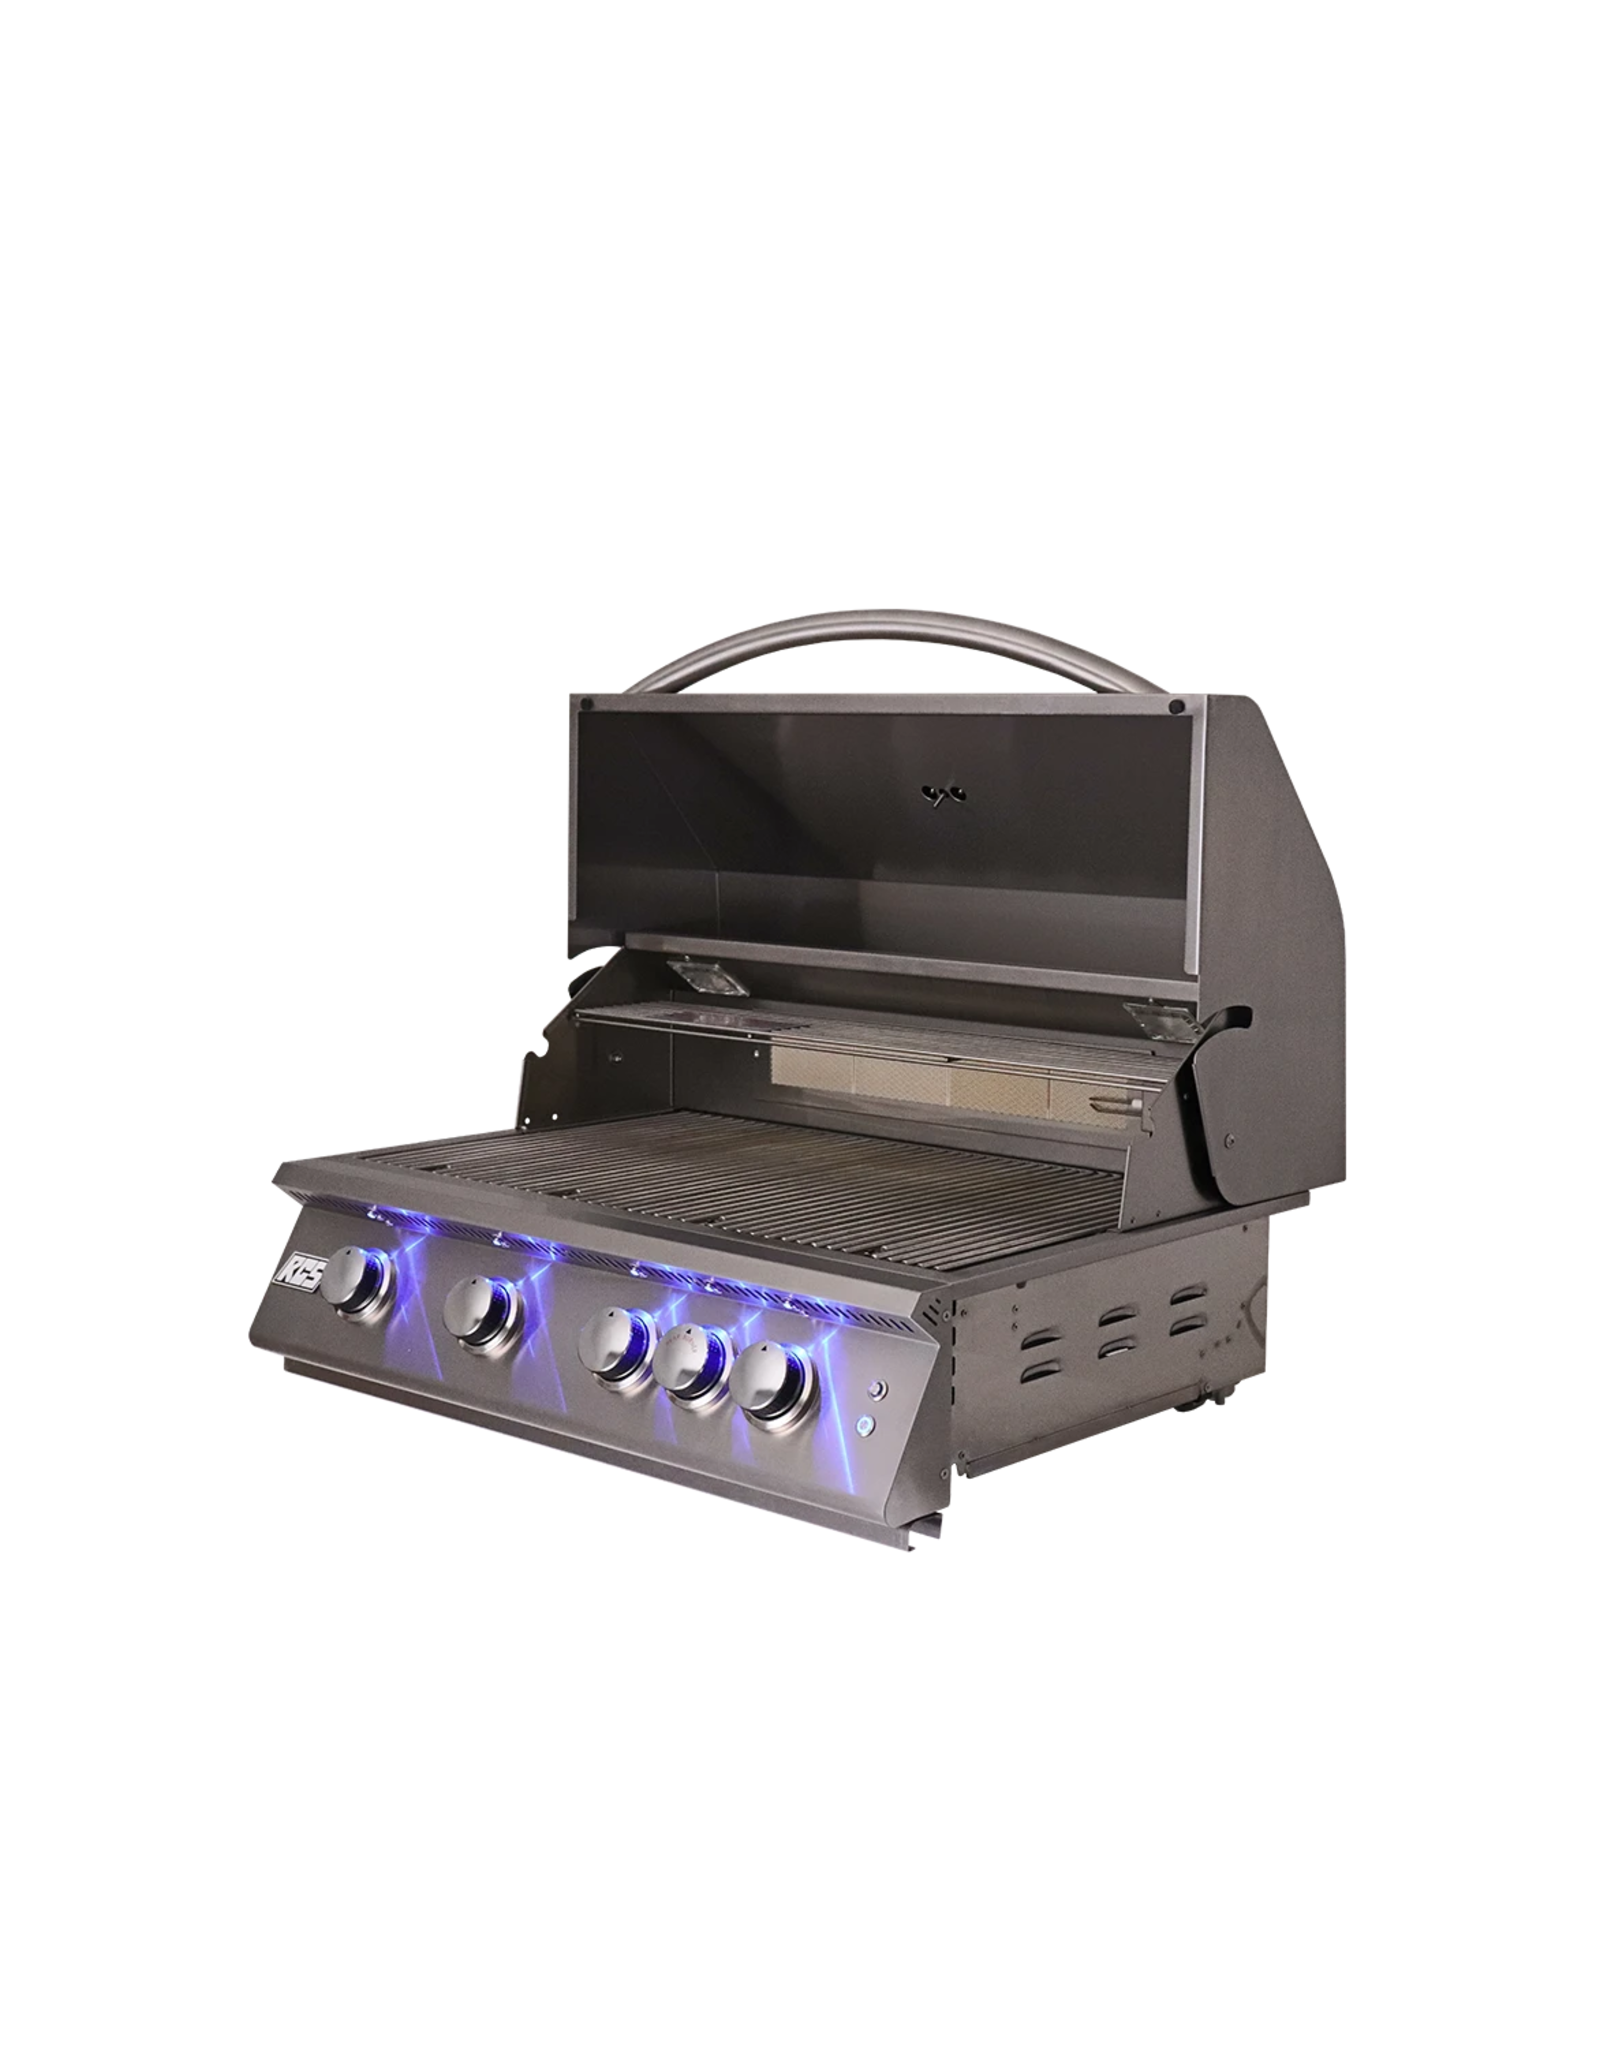 """Renaissance Cooking Systems Renaissance Cooking Systems 32"""" Premier Drop-In Grill w/ LED Lights Natural Gas - RJC32AL"""